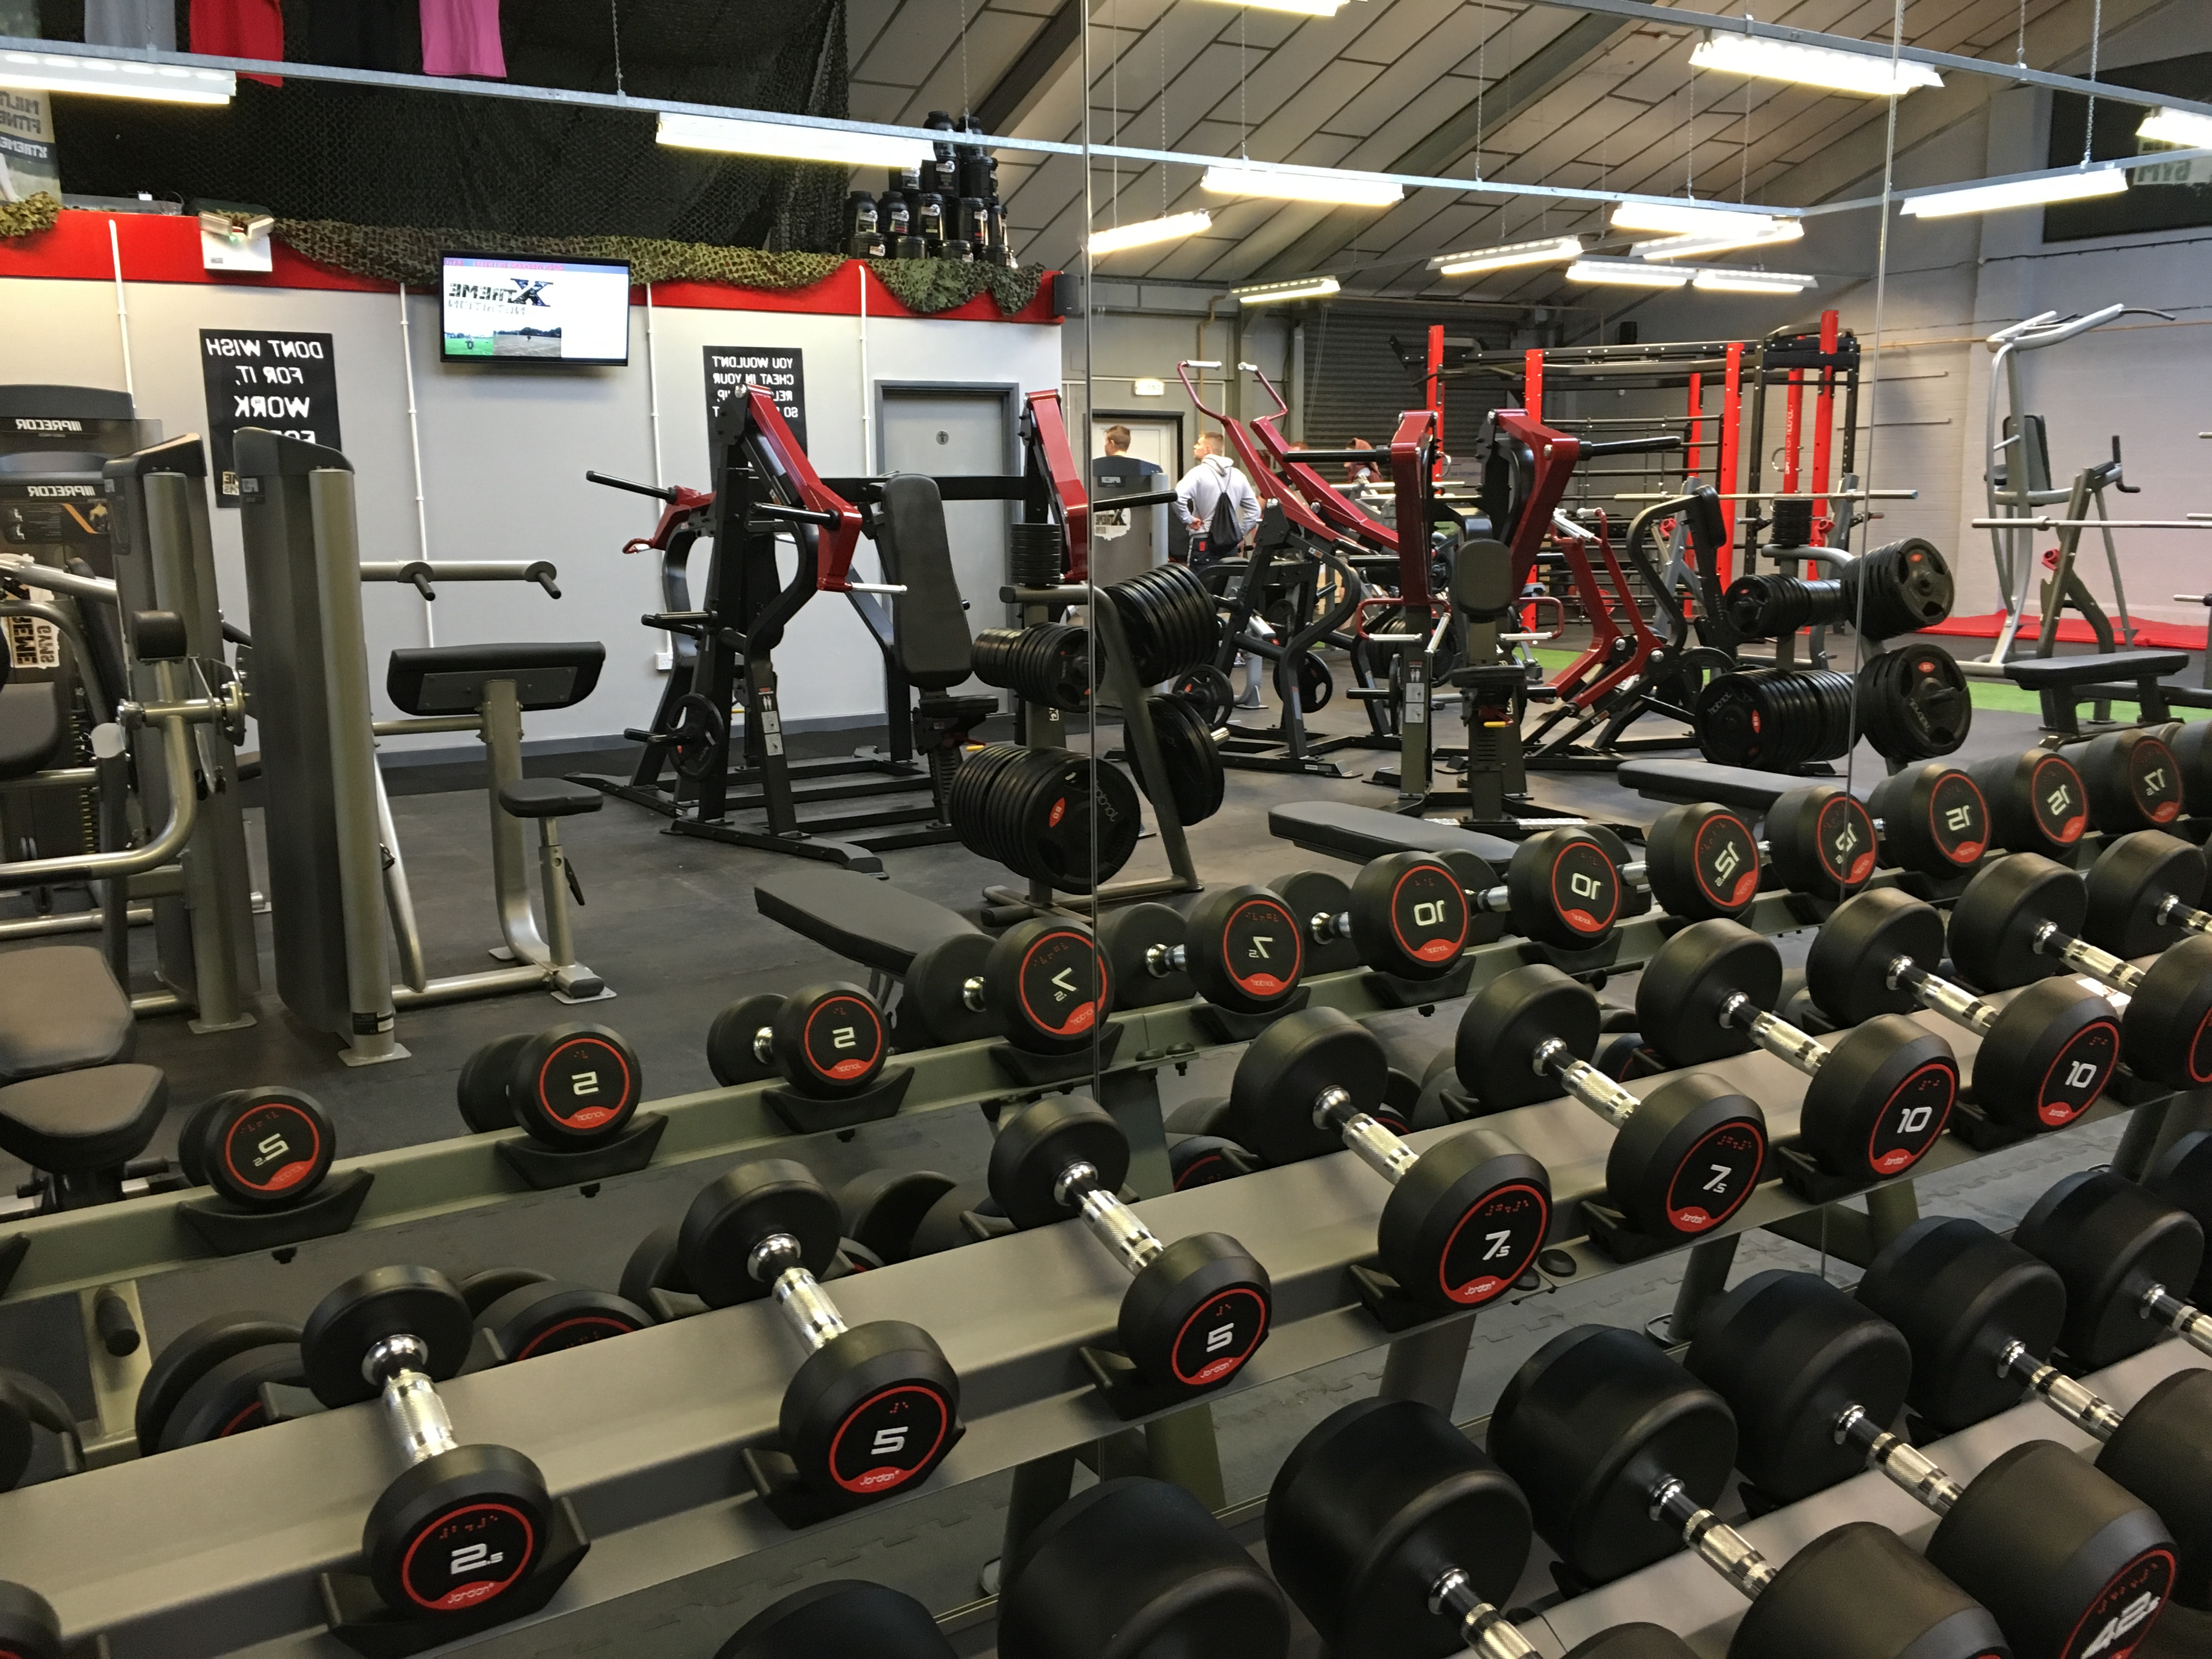 Xtreme gyms stratford upon avon for fitness enthusiasts for Fitness gym